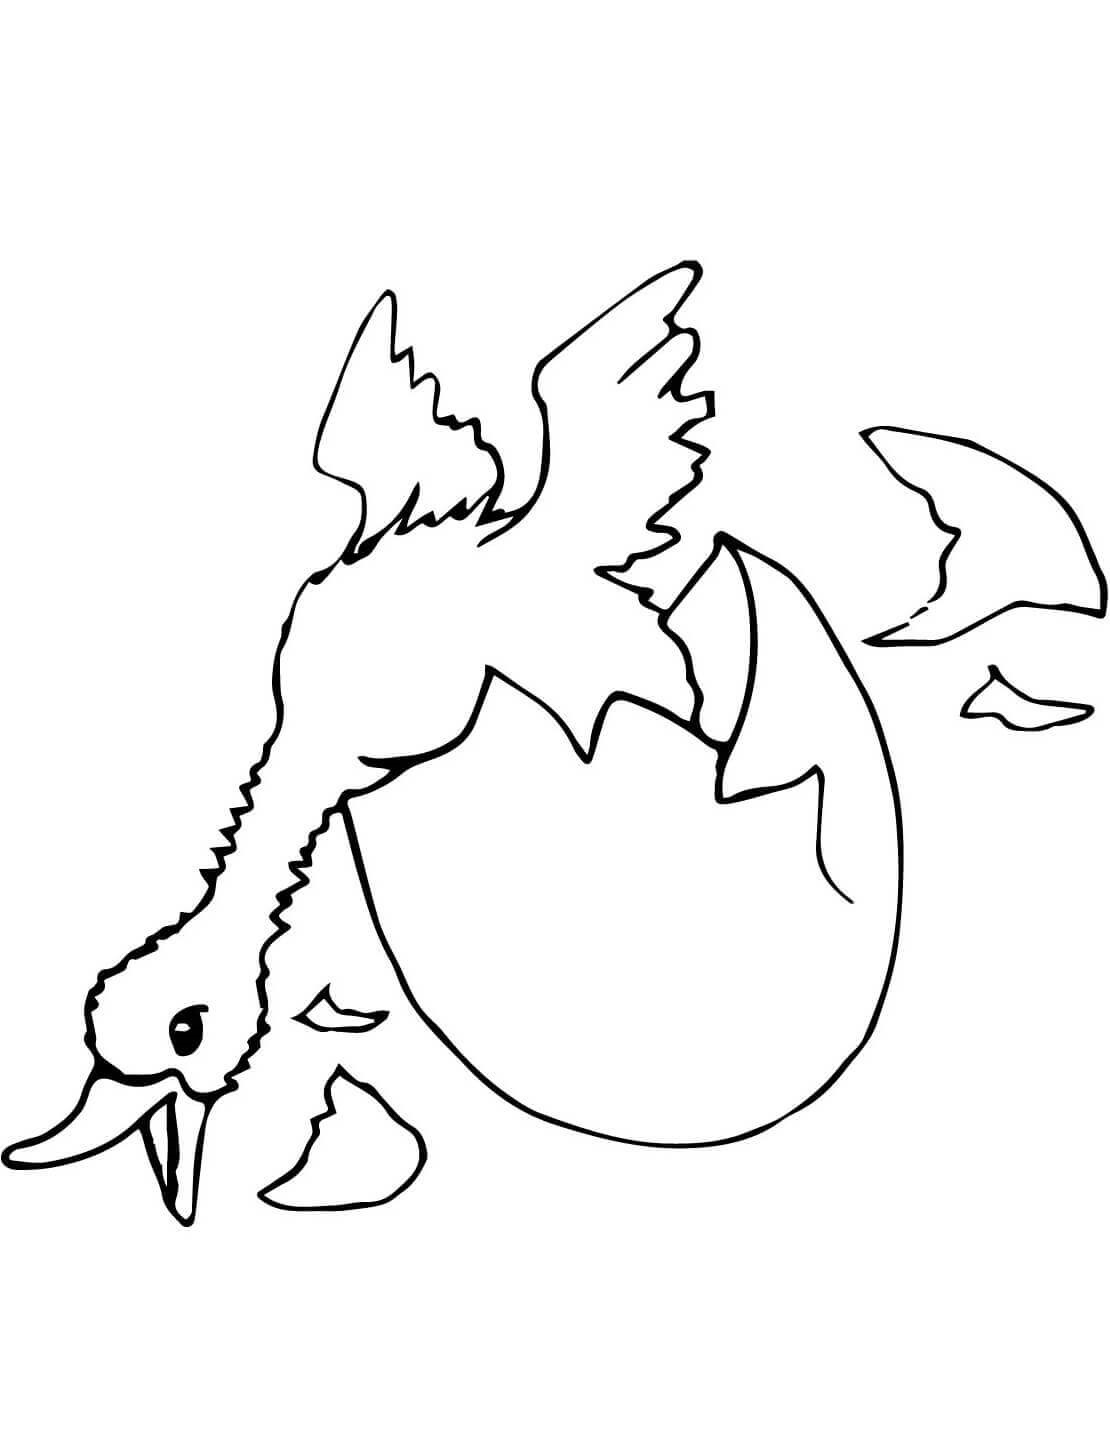 Baby duck hatching yelling Coloring Pages